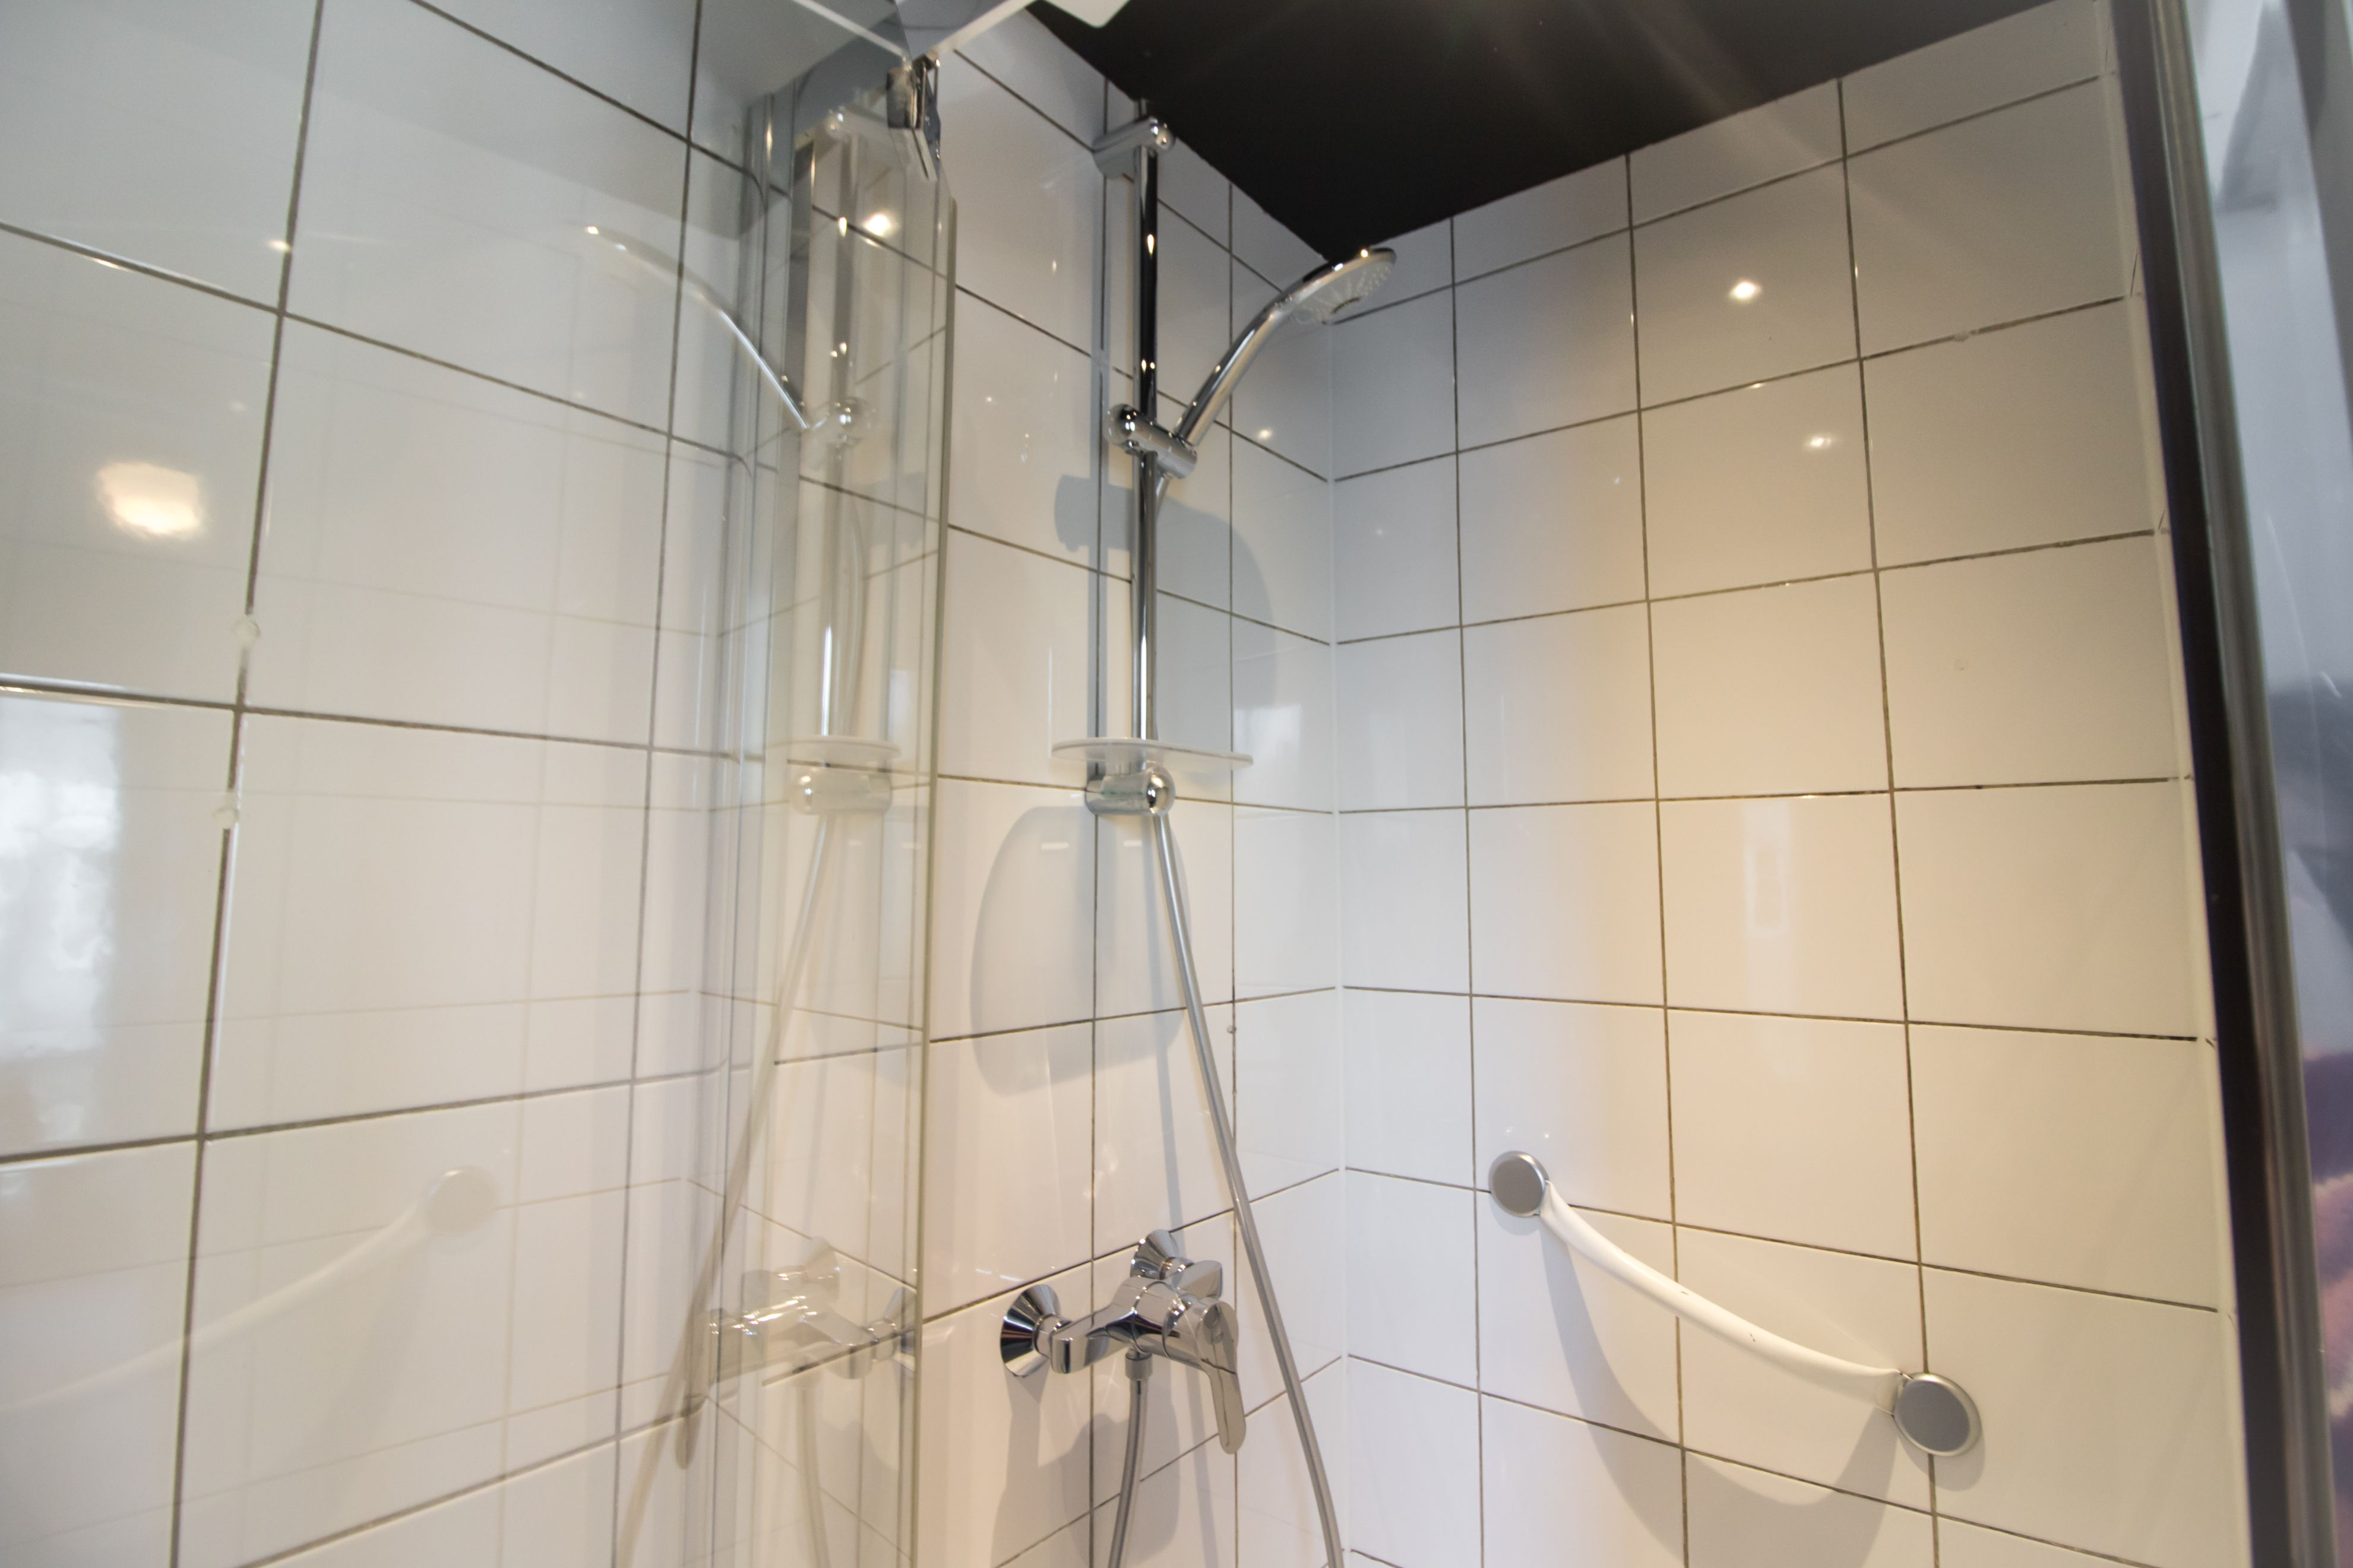 Clean, minimalistic white and silver shower in bathroom. Hotel Baby Paris Review: The Best Budget Hotel in Paris. Paris hotel. Paris hotels. Paris France. Paris budget hotels. Best hotels in Paris. Paris accommodation. Cheap hotels in Paris. Paris hotel deals. Places to stay in Paris. Top hotels in Paris. Paris hotel booking. Where to stay in Paris. Cheap accommodation in Paris. Hotels in central Paris. Paris travel blog. Paris travel guide. Things to do in Paris. What to do in Paris. Places to See in Paris. Things to see in Paris. What to see in Paris. Click through to read more...